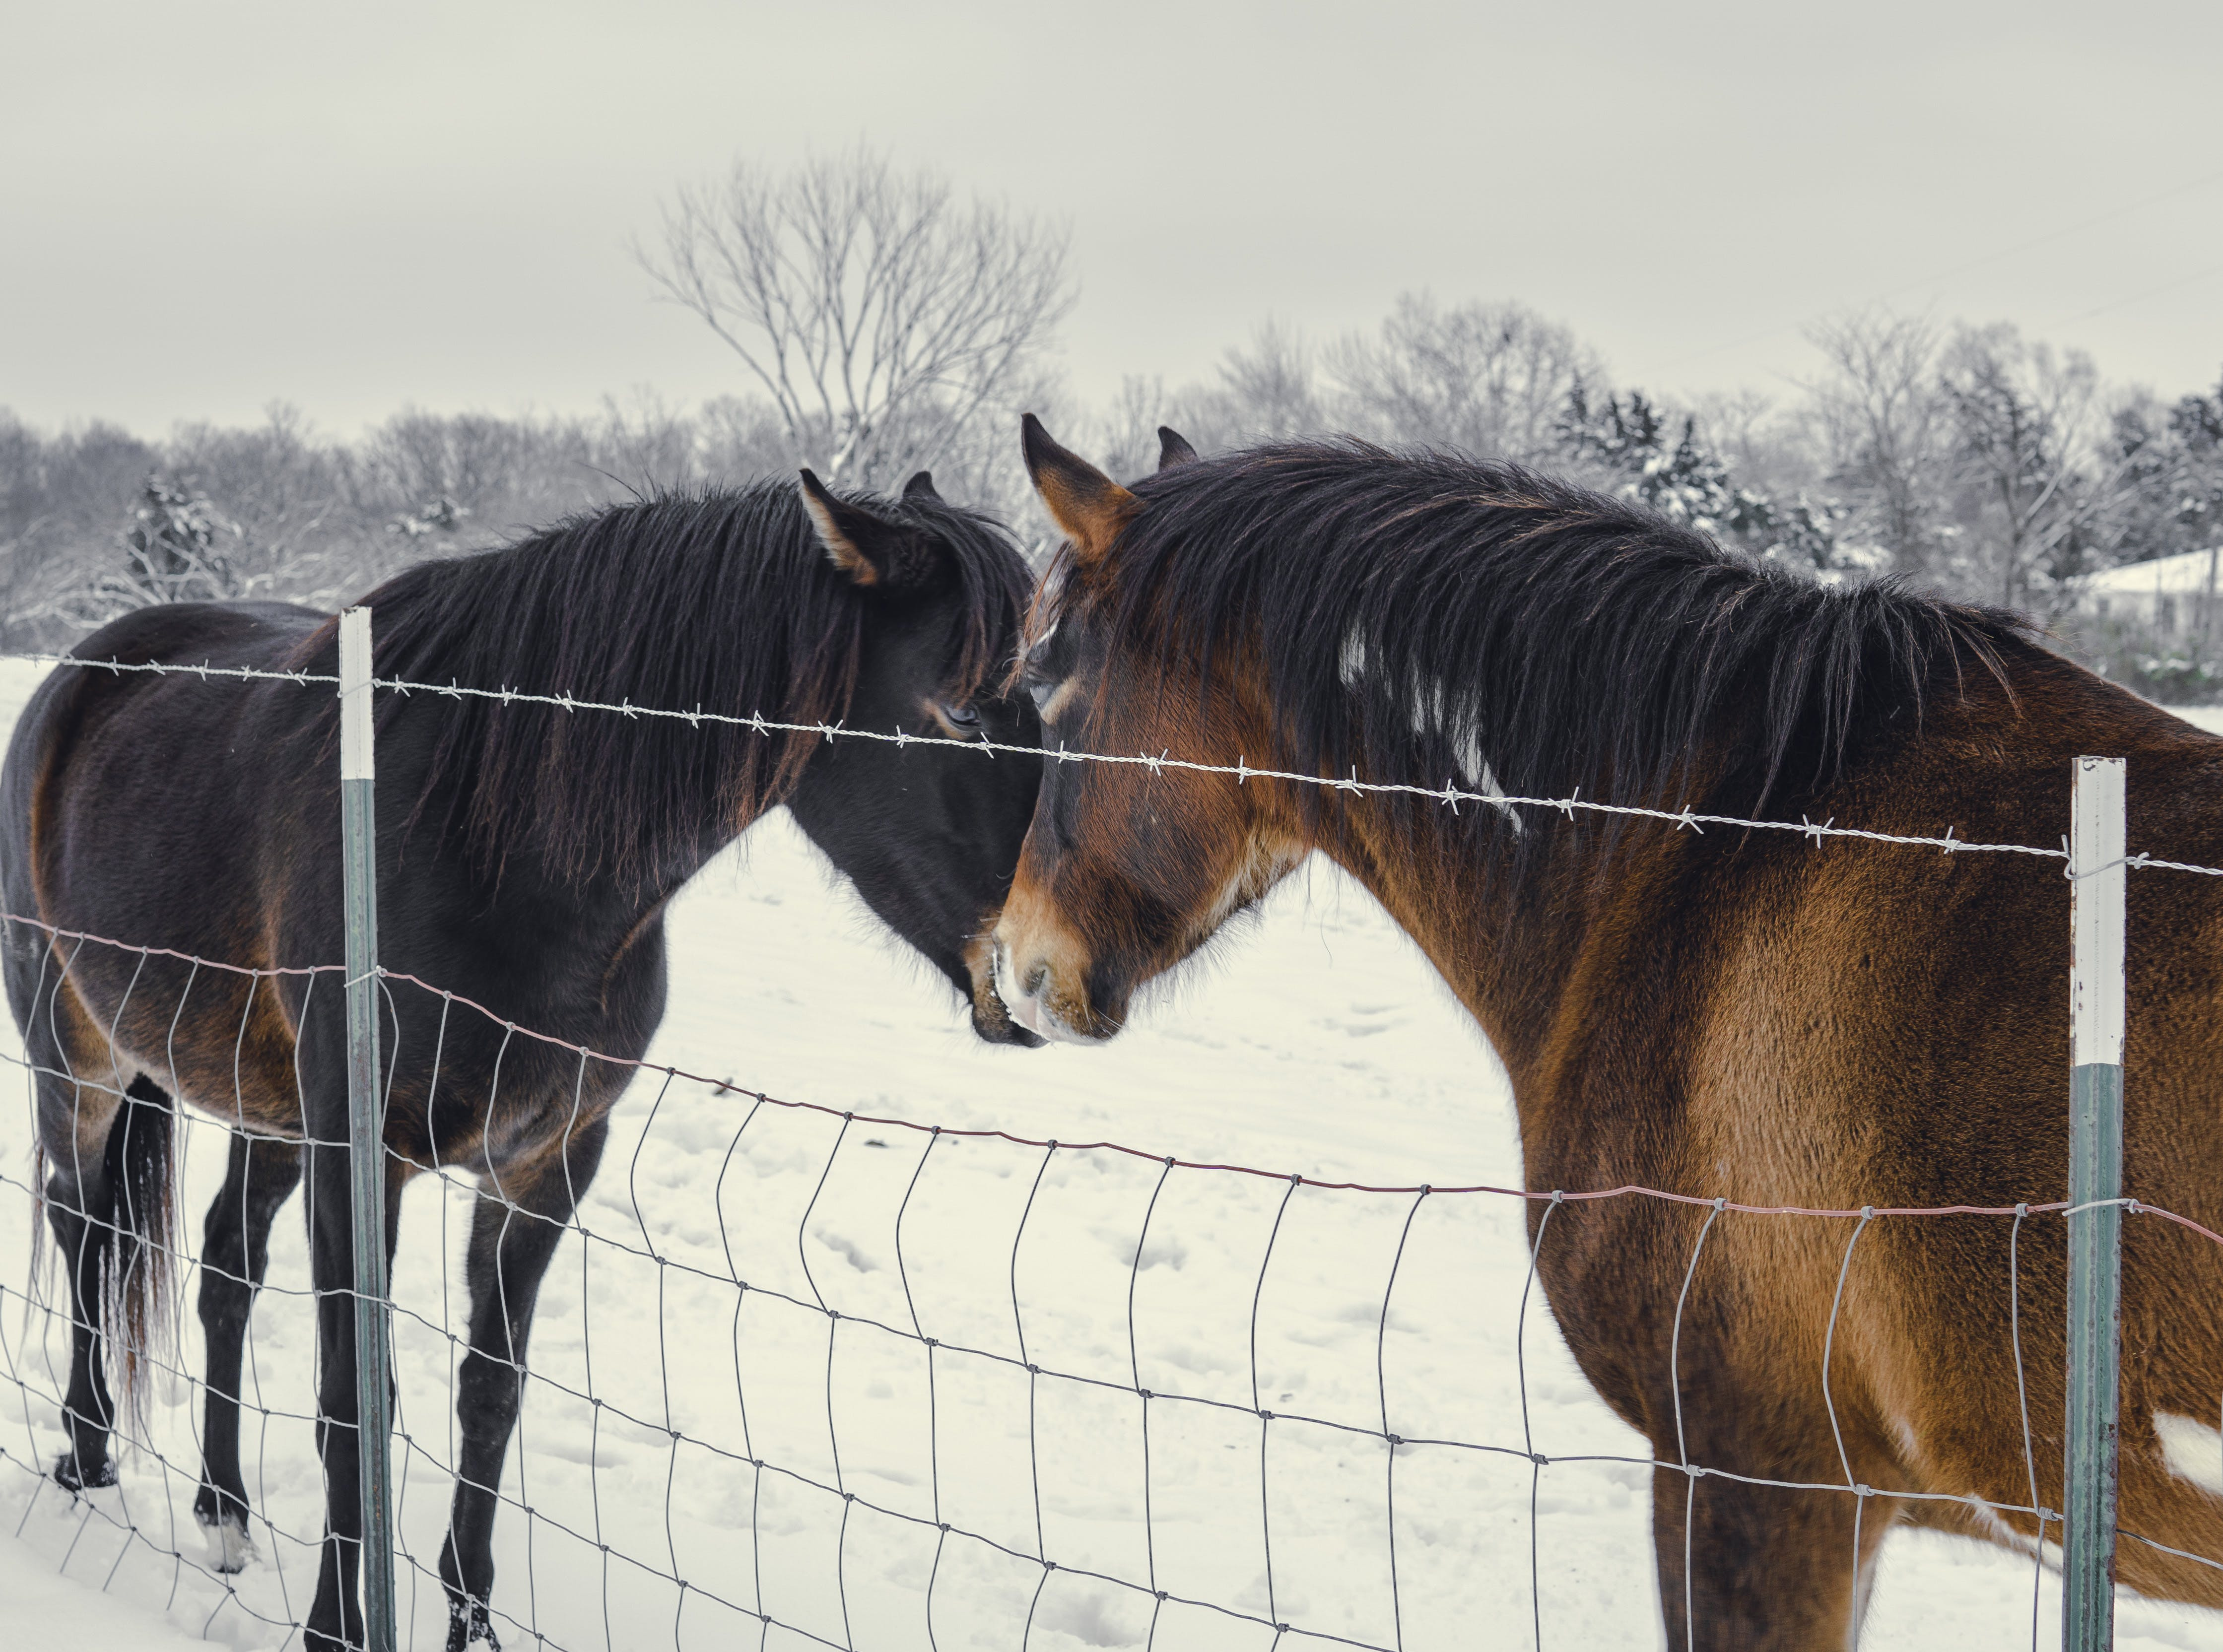 Black and Brown Horses near a Fence during Winter